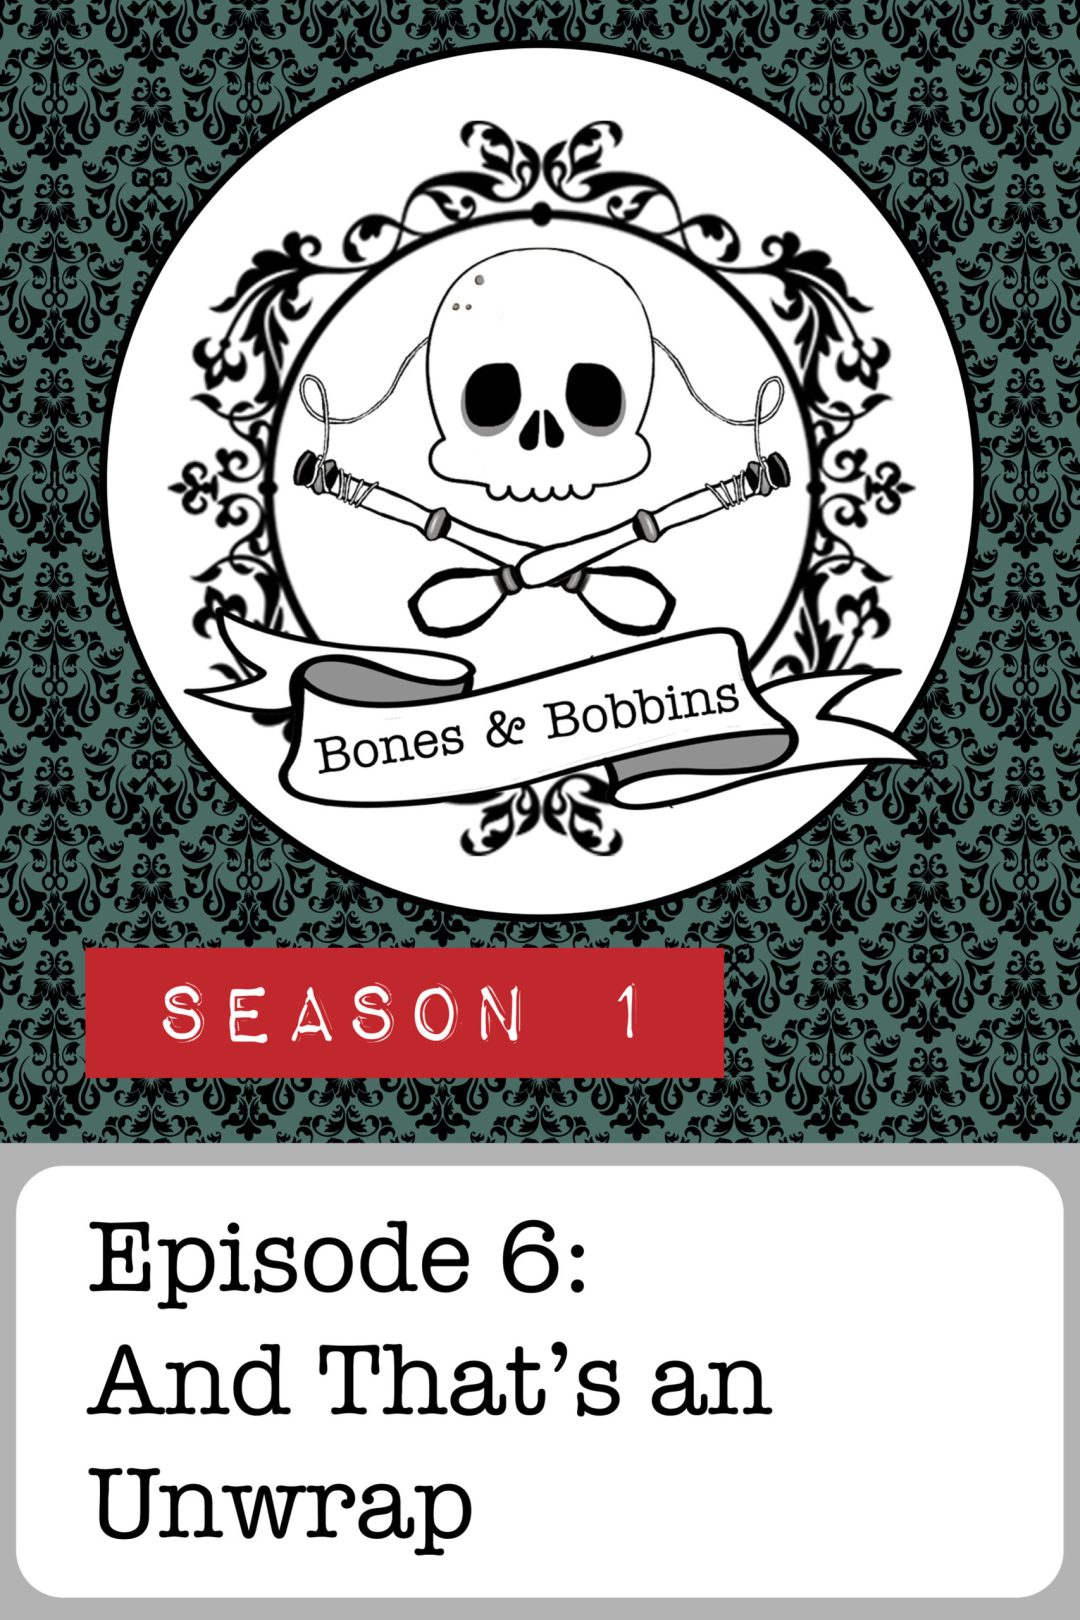 The Bones and Bobbins Podcast, Season 1, Episode 06: And That's an Unwrap